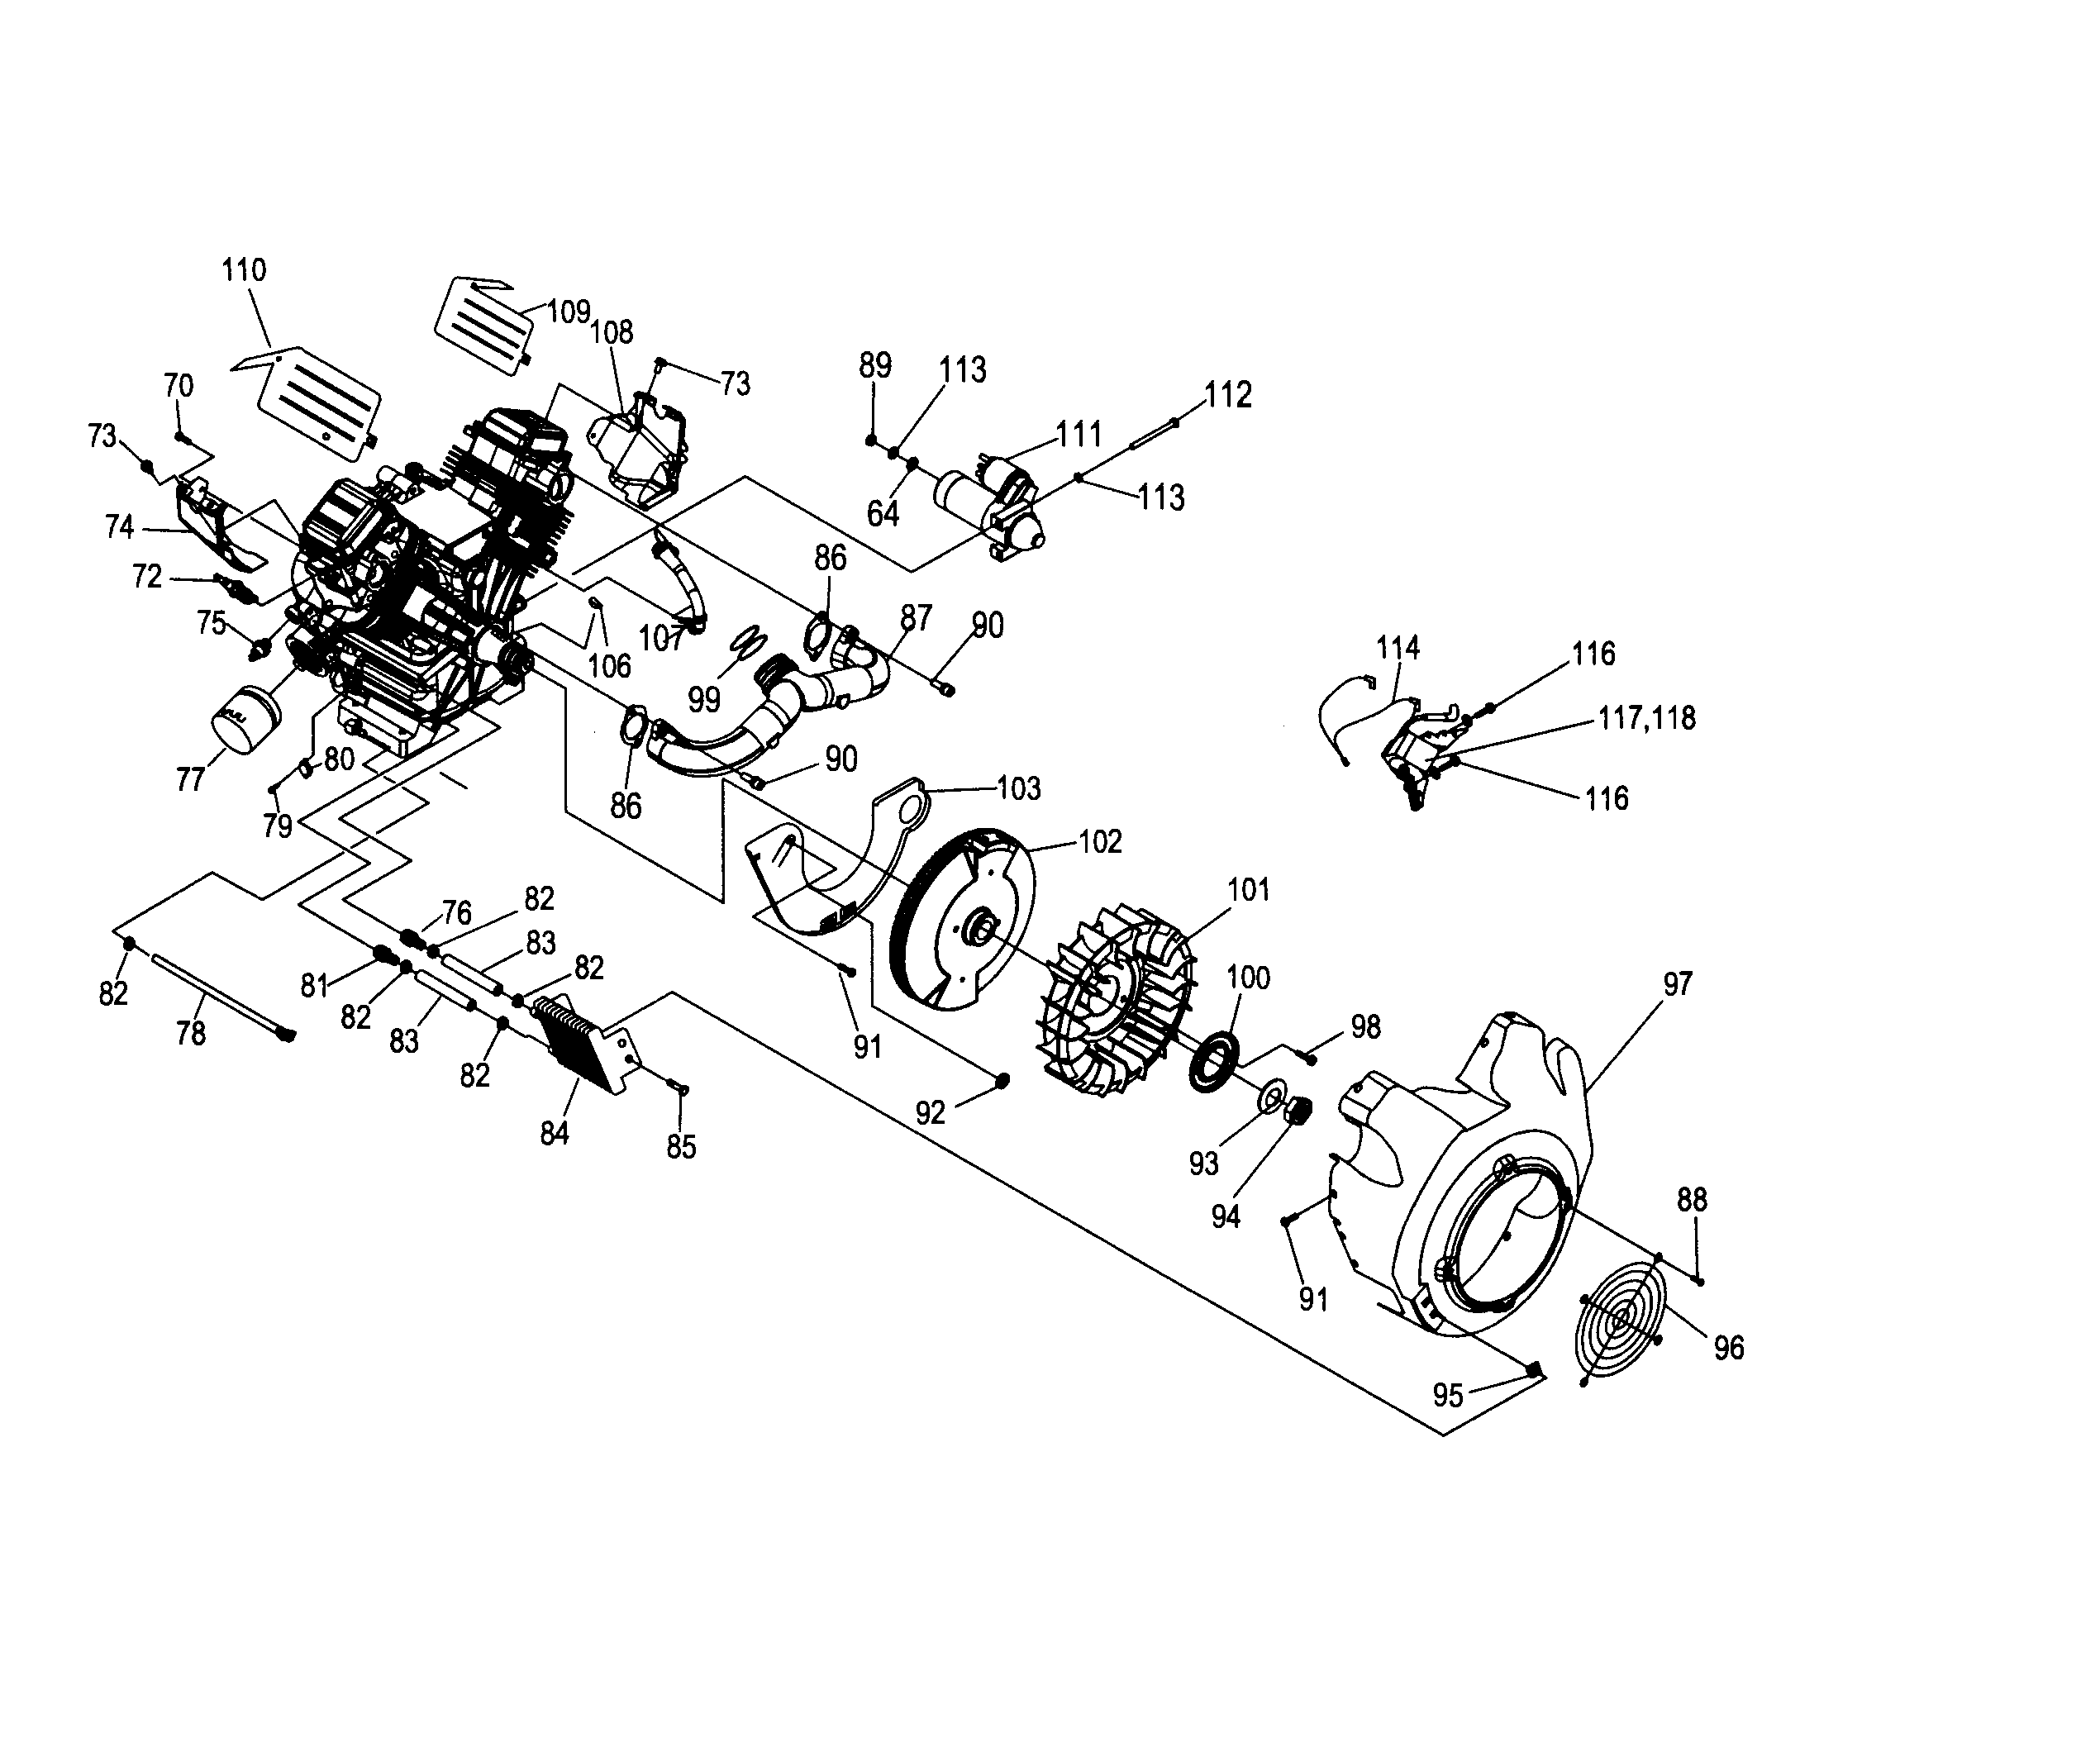 ENGINE 2 Diagram & Parts List for Model 0062410 Generac